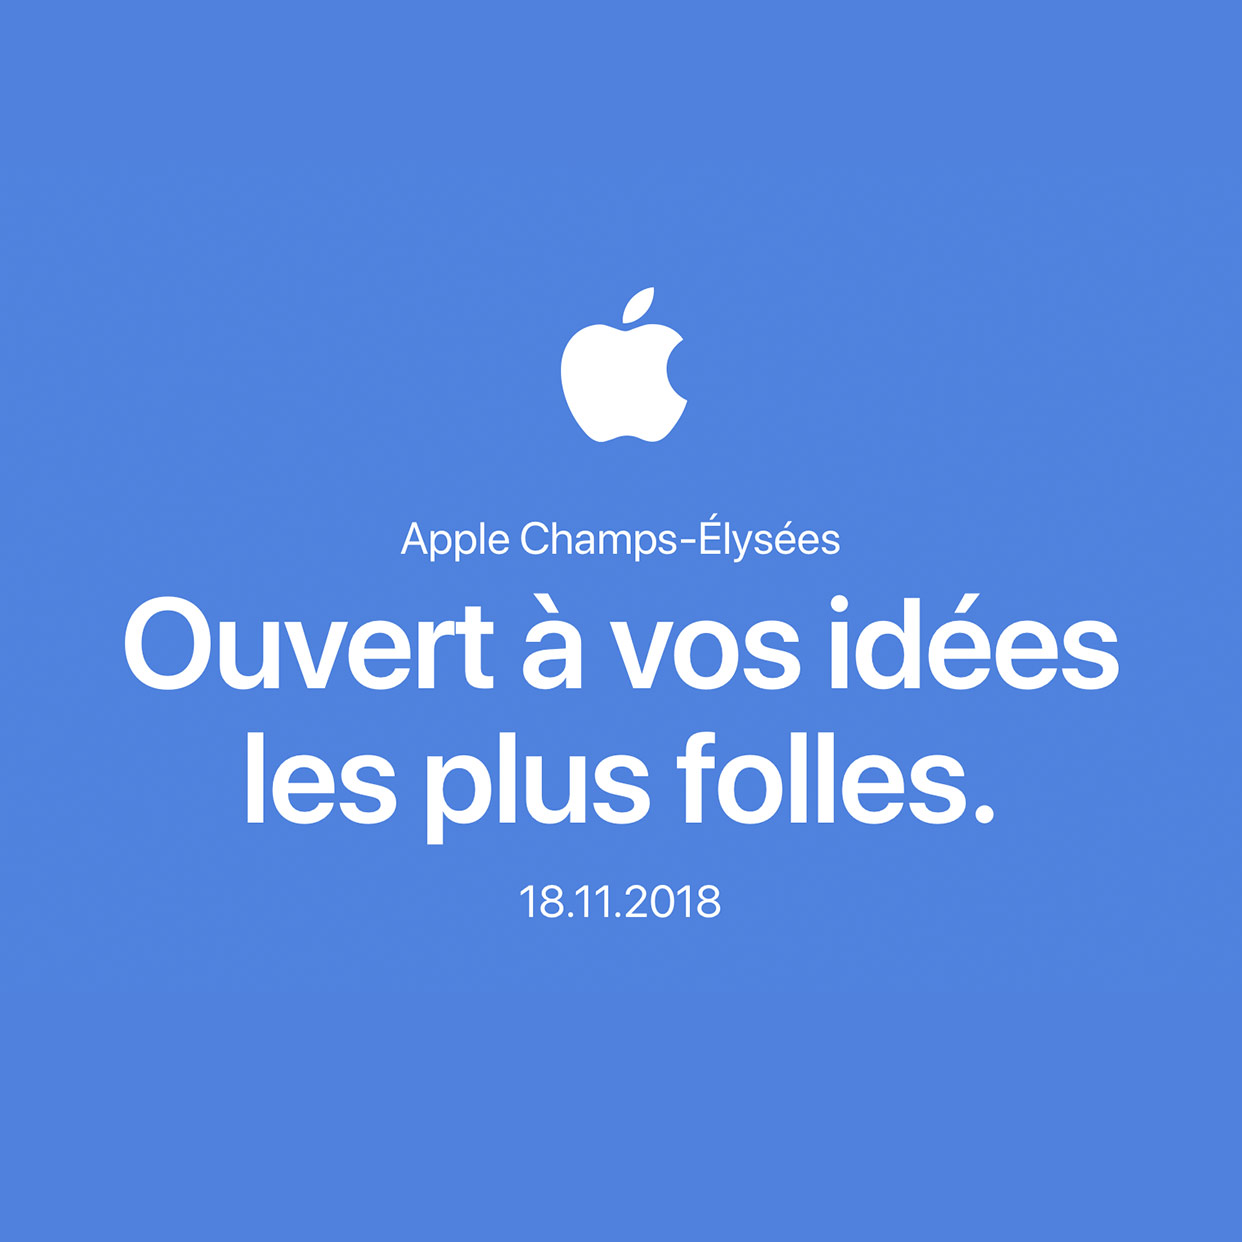 Apple Champs Elysees opening